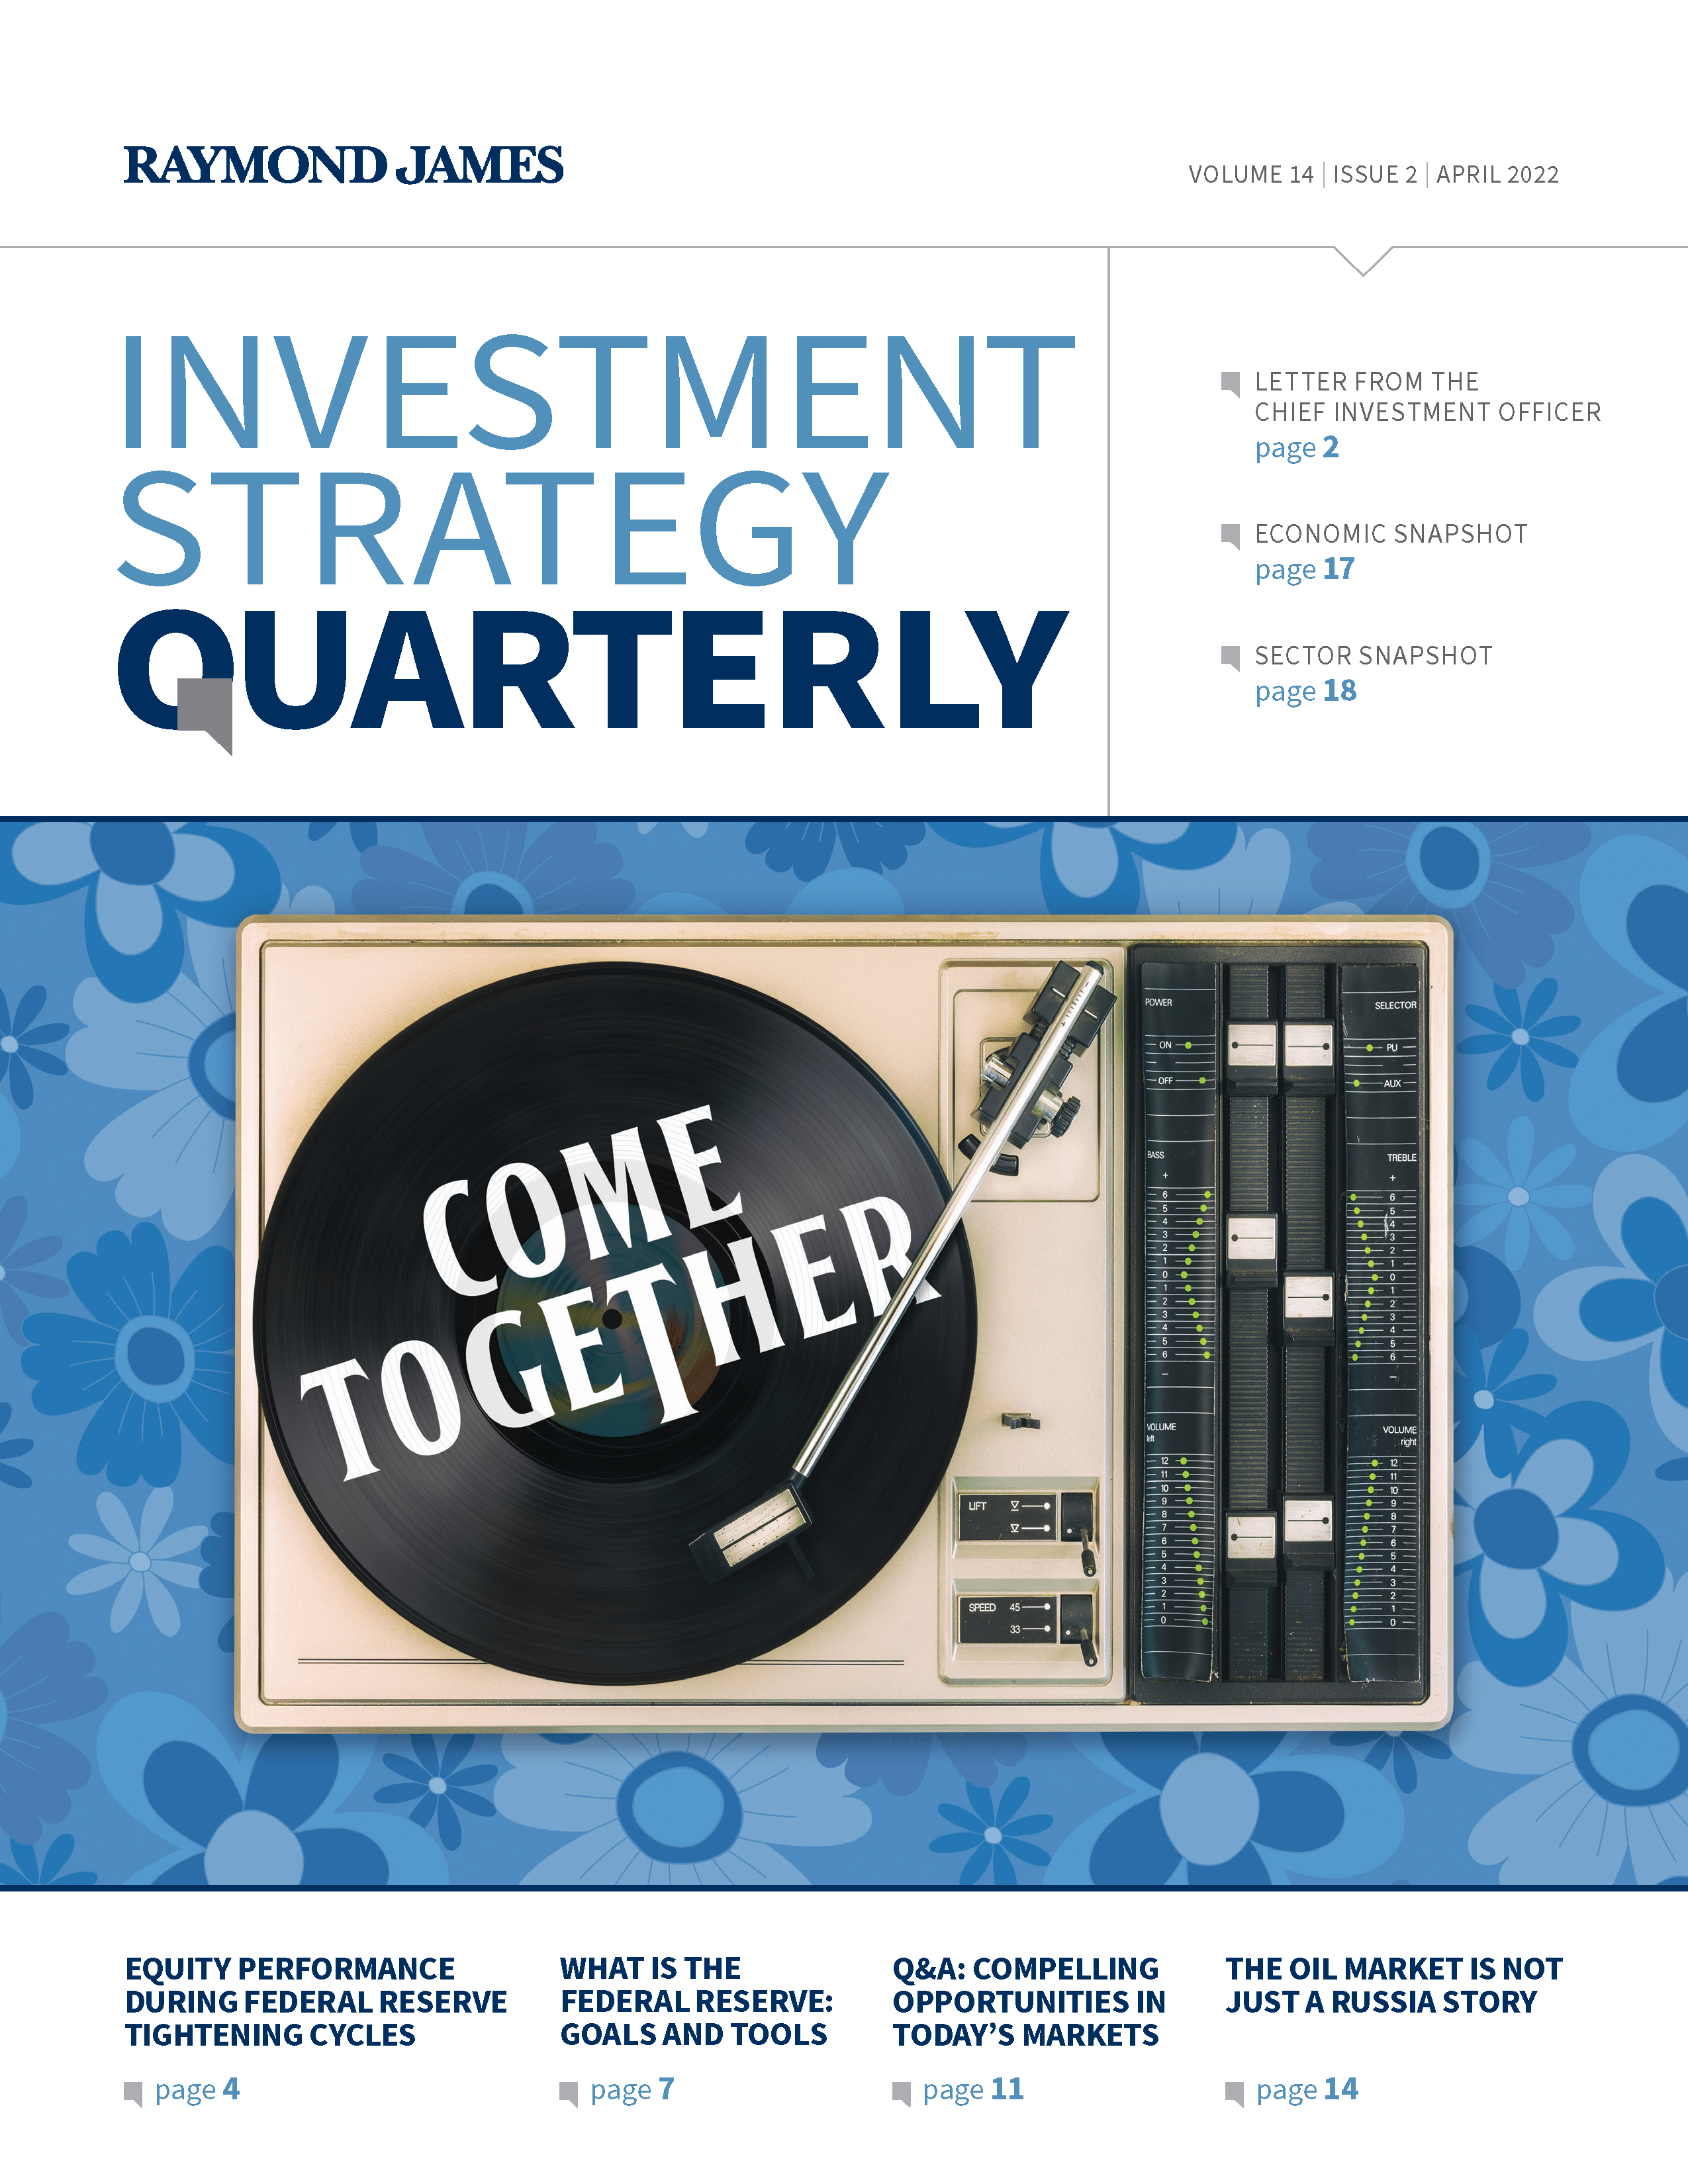 Read the full Investment Strategy Quarterly